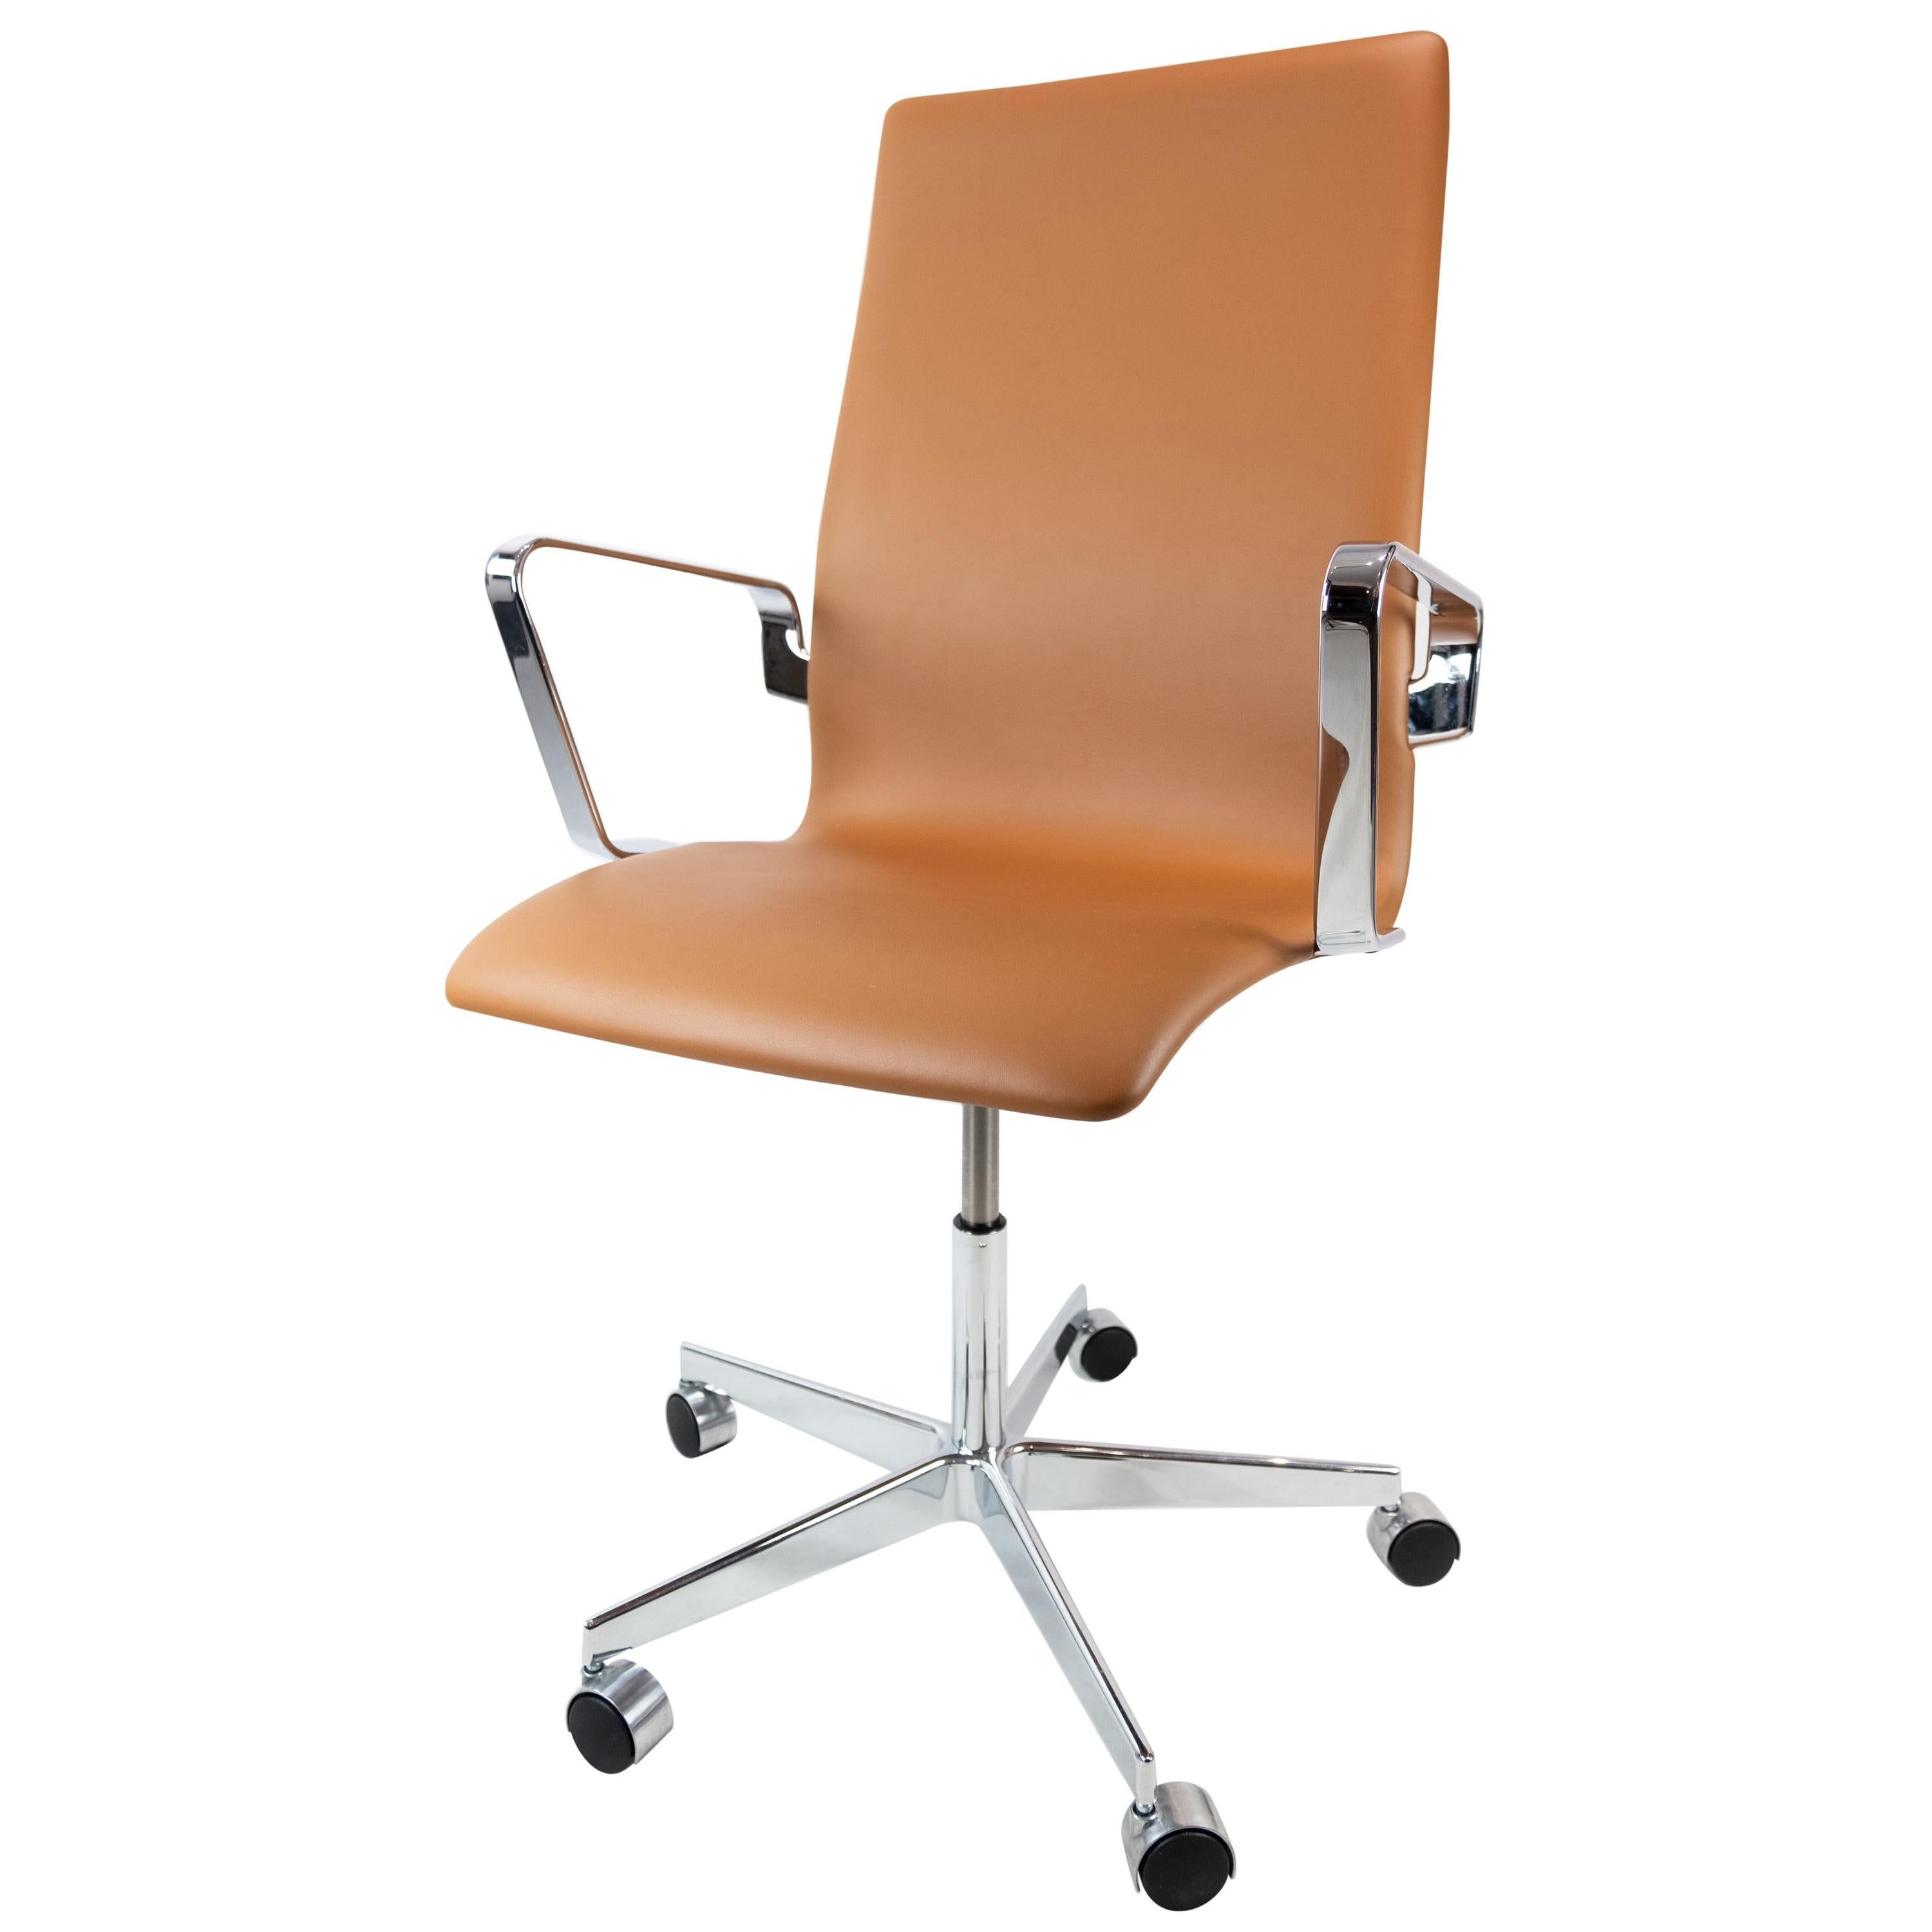 Oxford Classic Office Chair, Model 3293C, by Arne Jacobsen